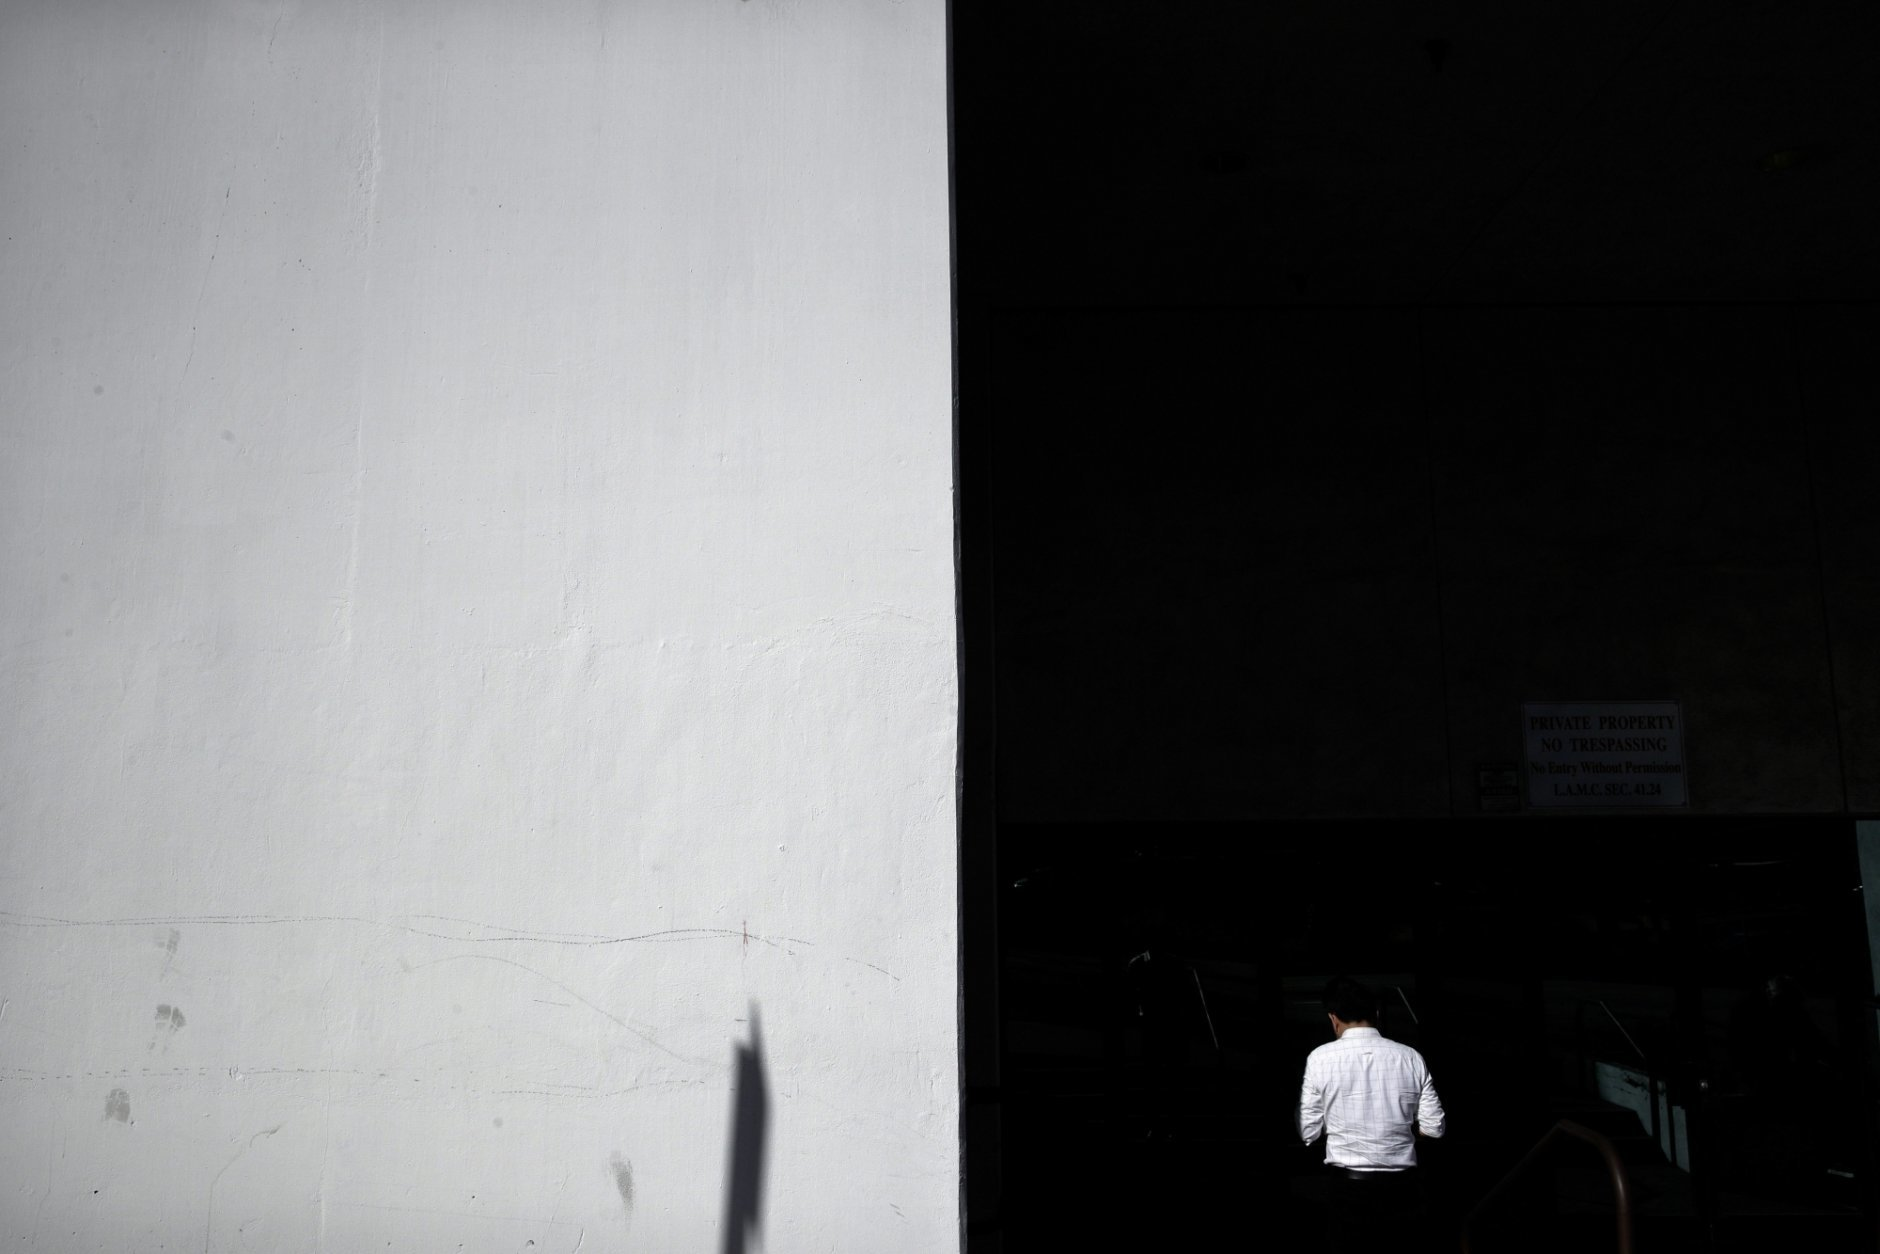 A man is lit by the morning sun during a walk in Los Angeles on Wednesday, Jan. 9, 2019. (AP Photo/Jae C. Hong)